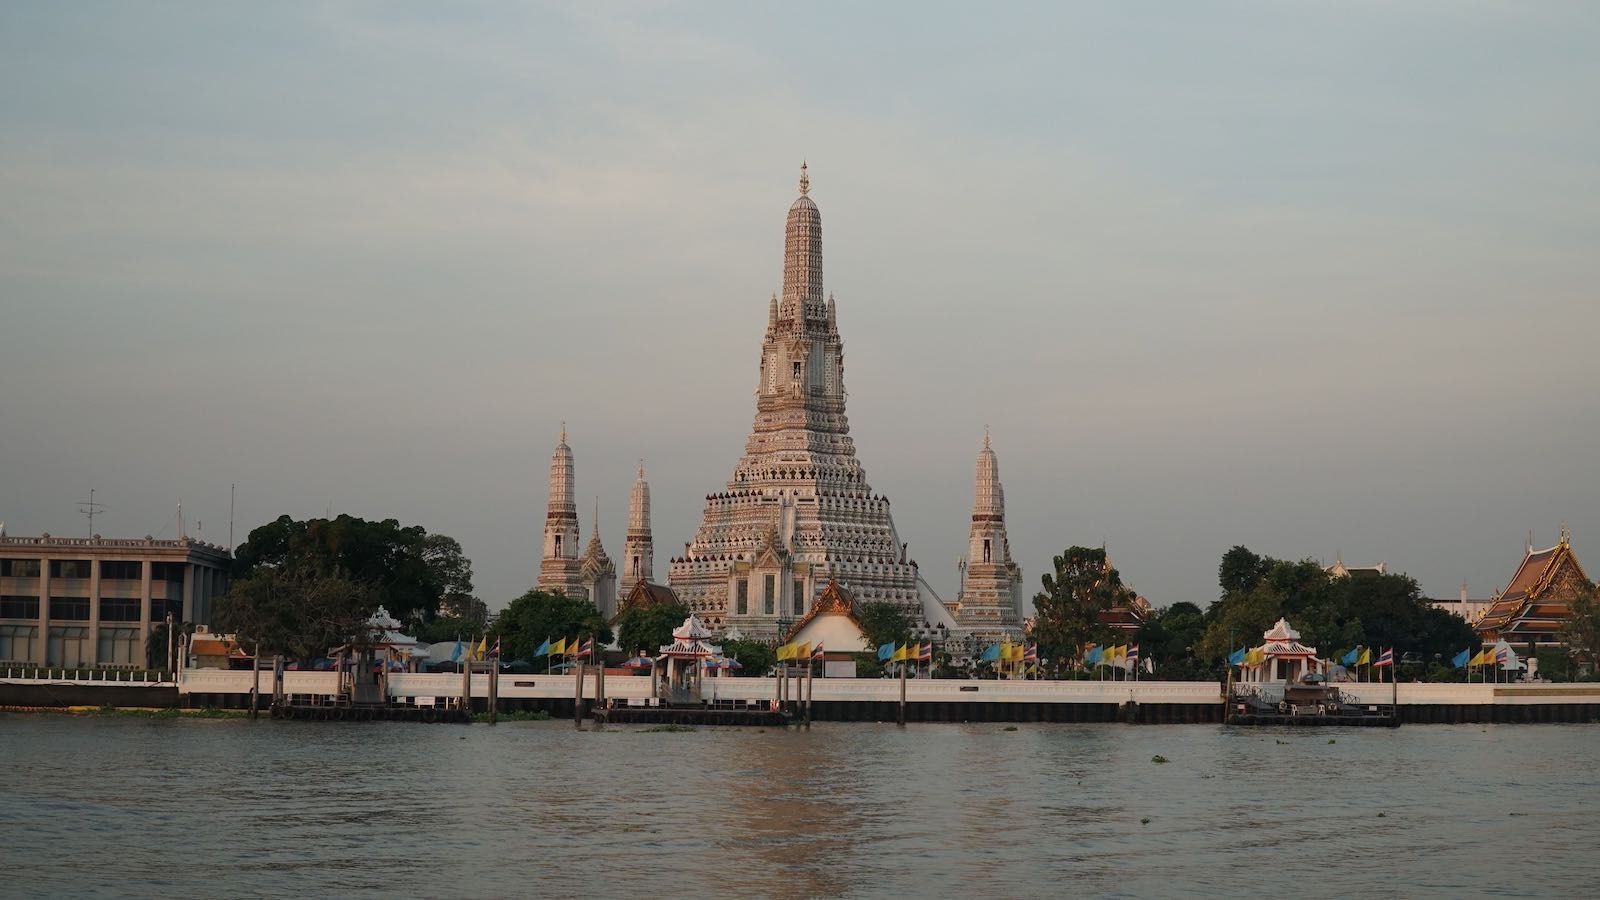 Wat Arun (Temple of Dawn) one of the most recognizable templates in Bangkok. Taking this photo was quite the struggle. The template is situated on the banks of the river. Across the water, the entire opposite bank is lined with residential homes or shops and businesses that weren't open yet. I wanted a shot from across the river and I ran around to find a section of the riverbank that was open to the public but never found it. I wanted to photograph the temple before the sun completely rose and was running out of time looking for a public view. I ended up sneaking into the patio of a boutique coffee shop to take this photo, until the owner came by to open the shop and kicked me out.